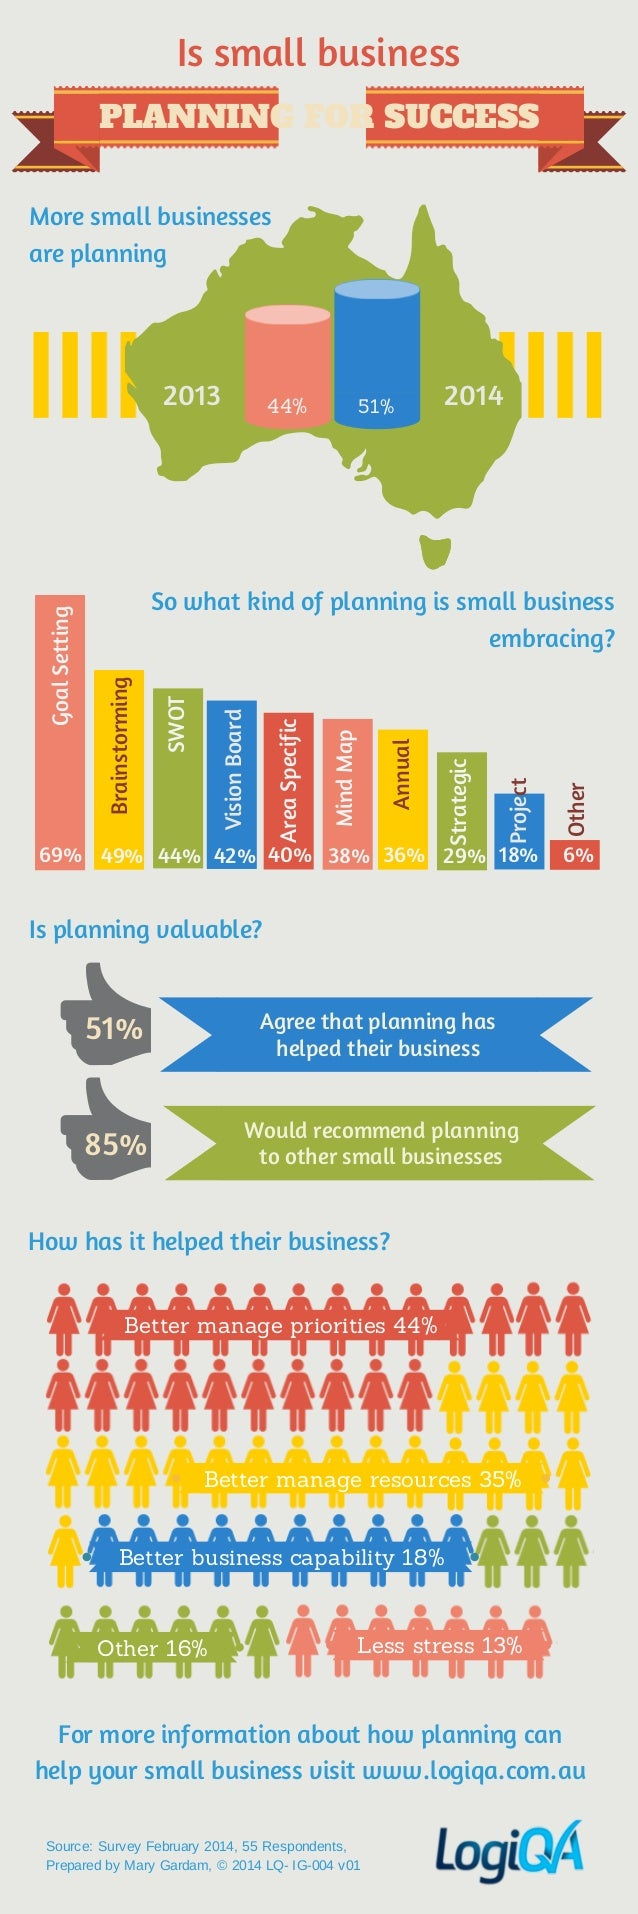 Is small business planning for success?